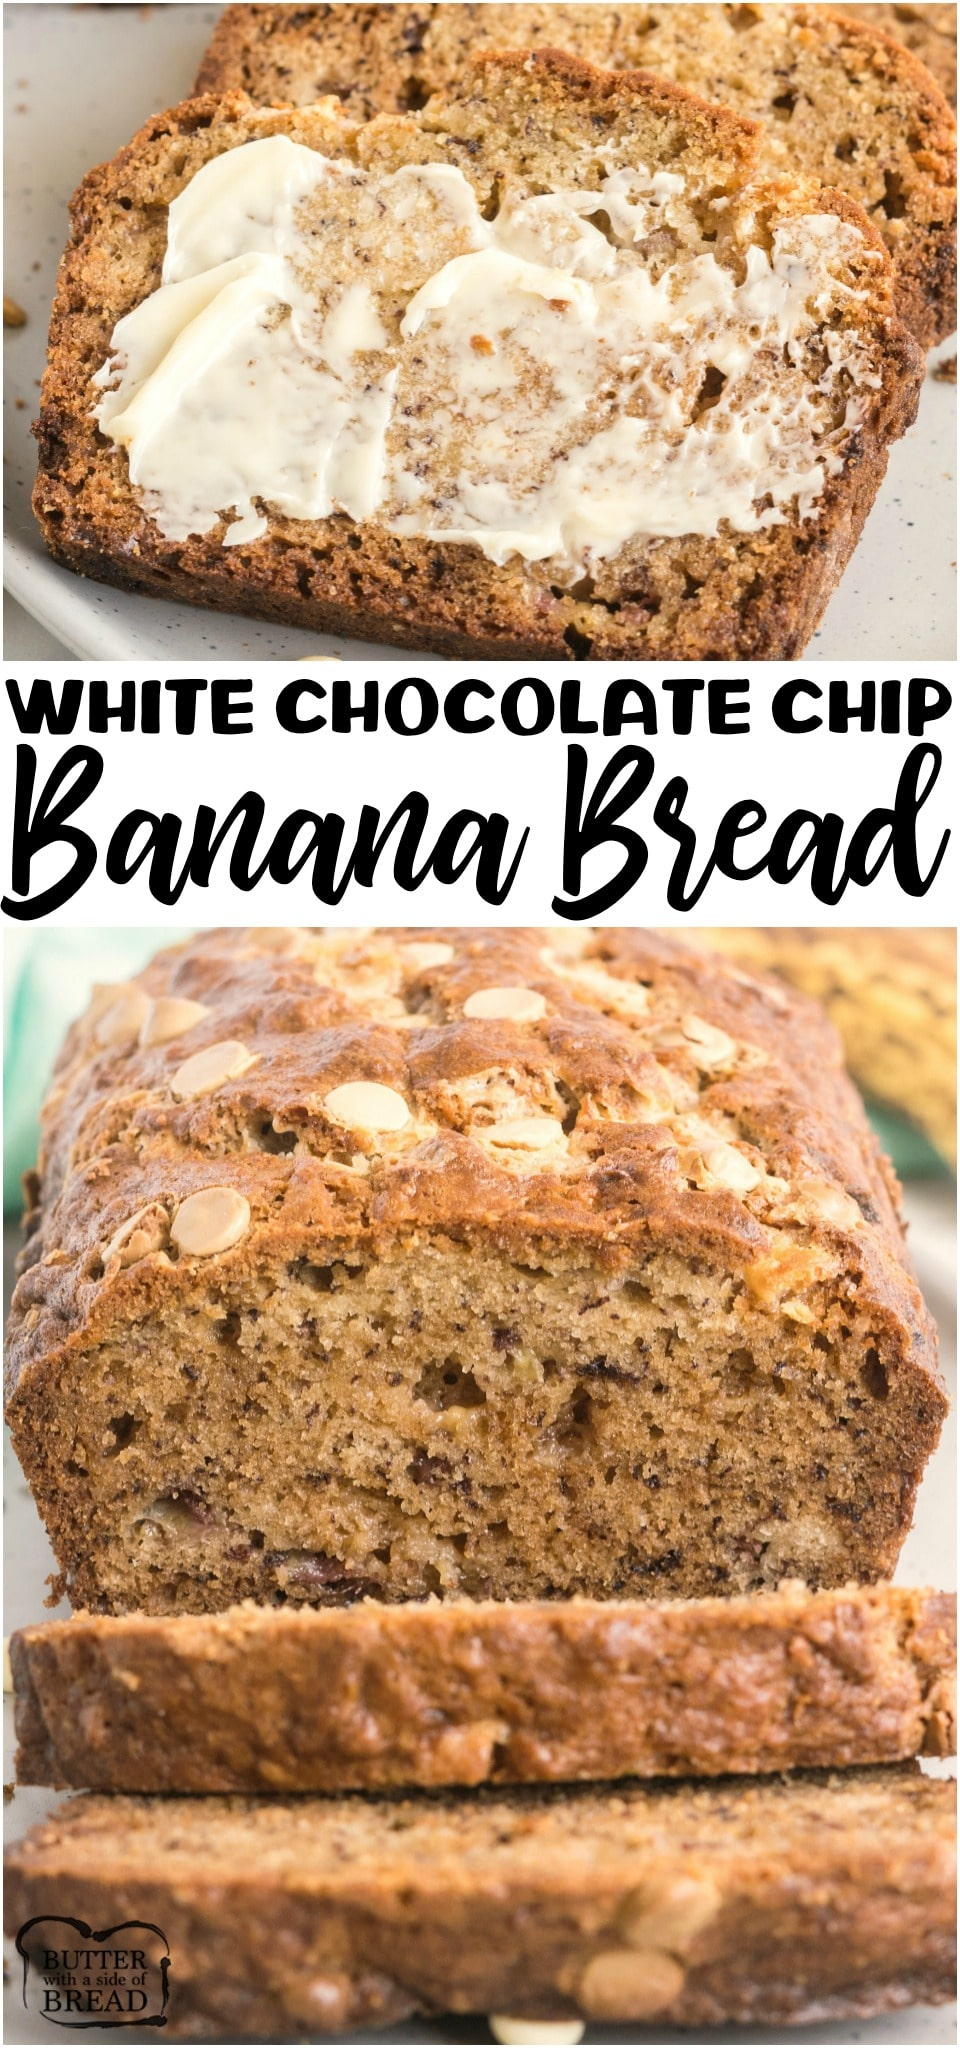 White Chocolate Chip Banana Bread is an incredible variation on classic banana bread! Sweet white chocolate and banana blending together to create an amazing banana bread recipe you need to try!